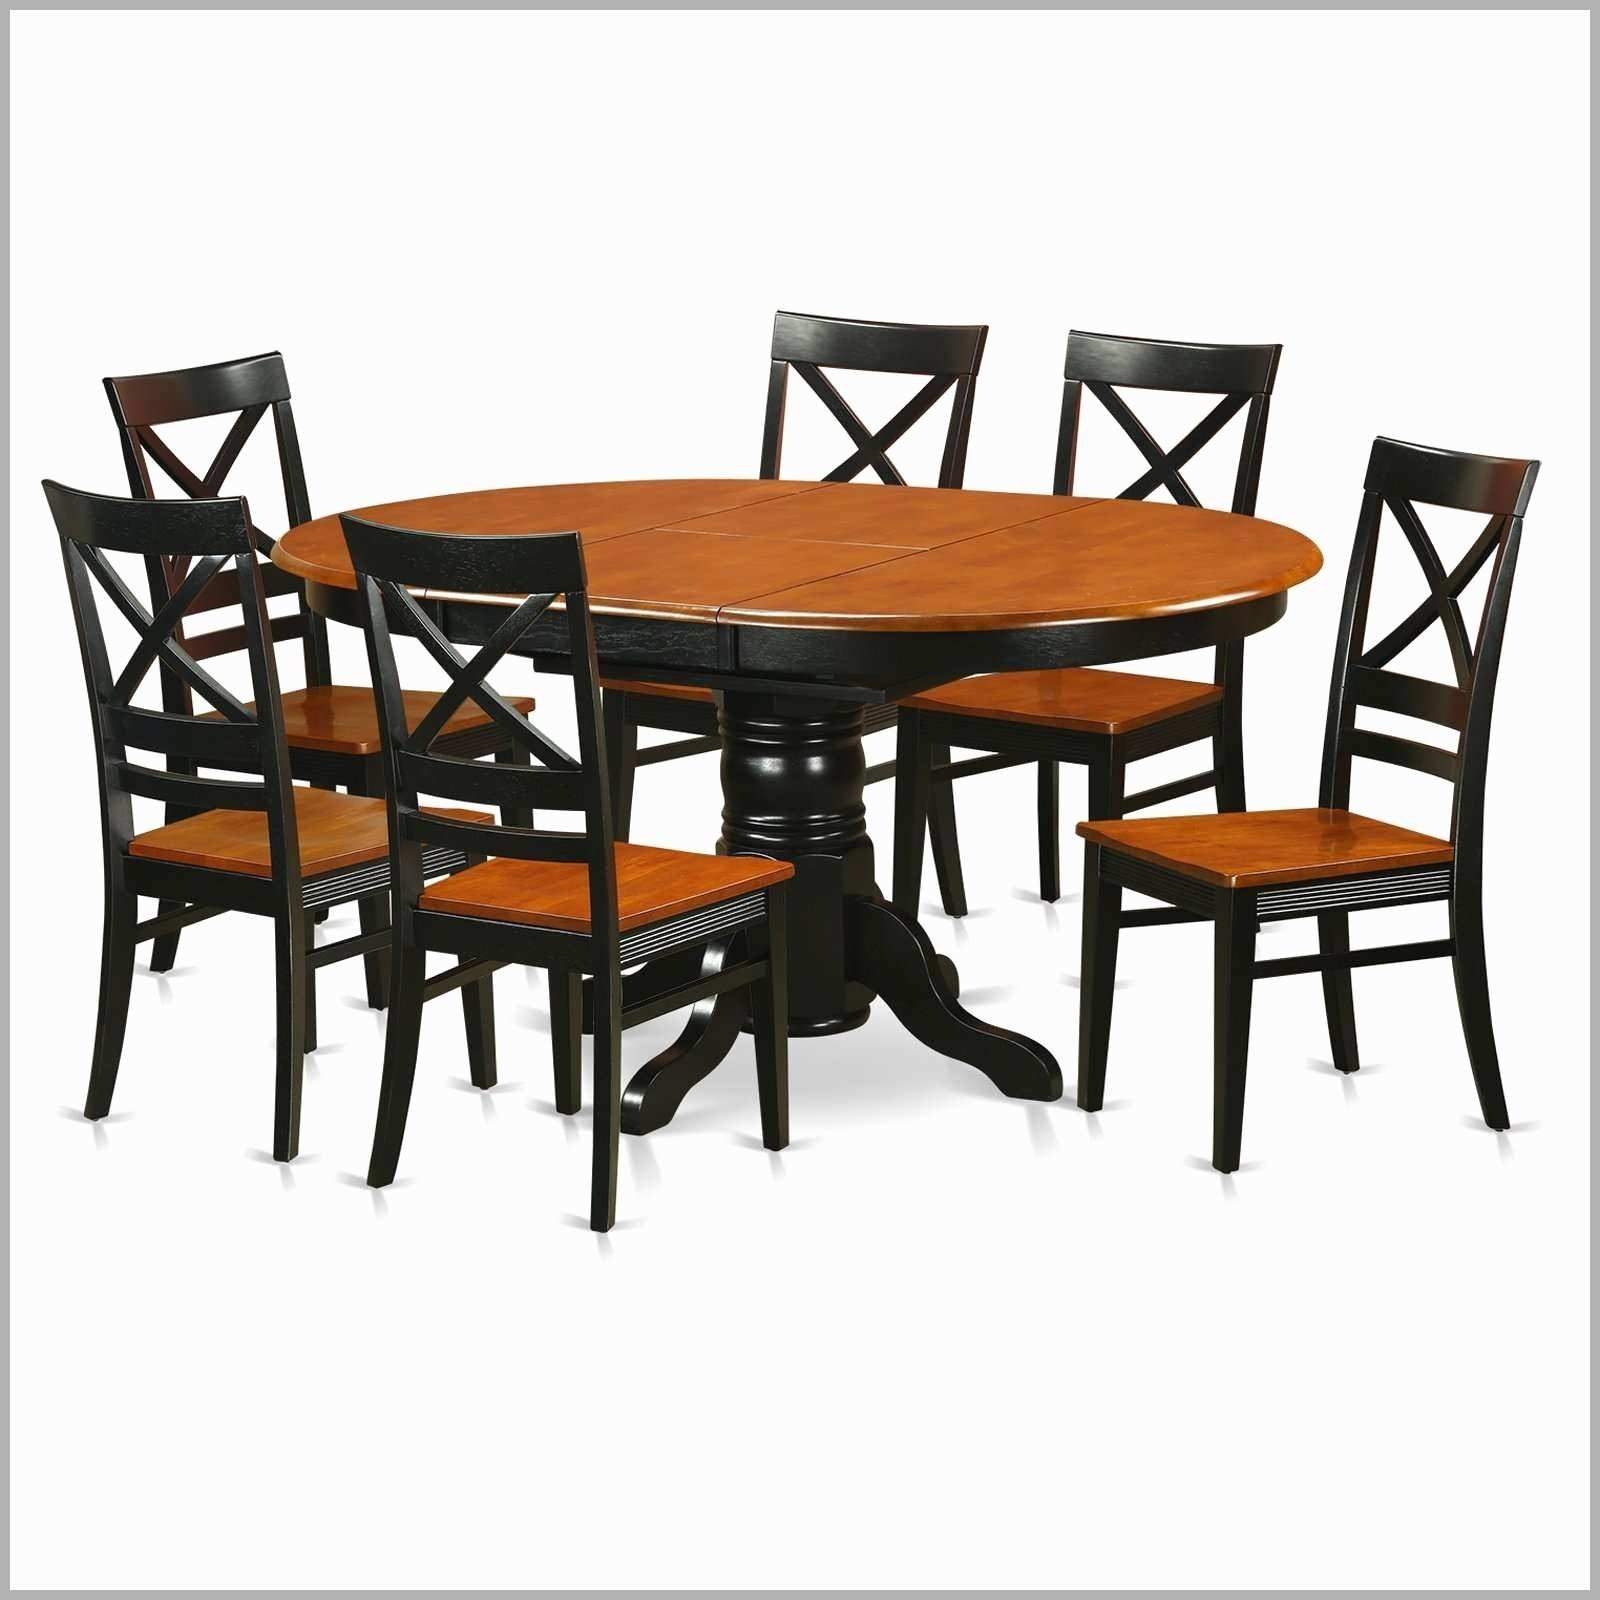 Trendy Jaxon Grey 5 Piece Round Extension Dining Sets With Wood Chairs In Ashton Round Pedestal Dining Table Elegant Kitchen Dining Area (View 22 of 25)